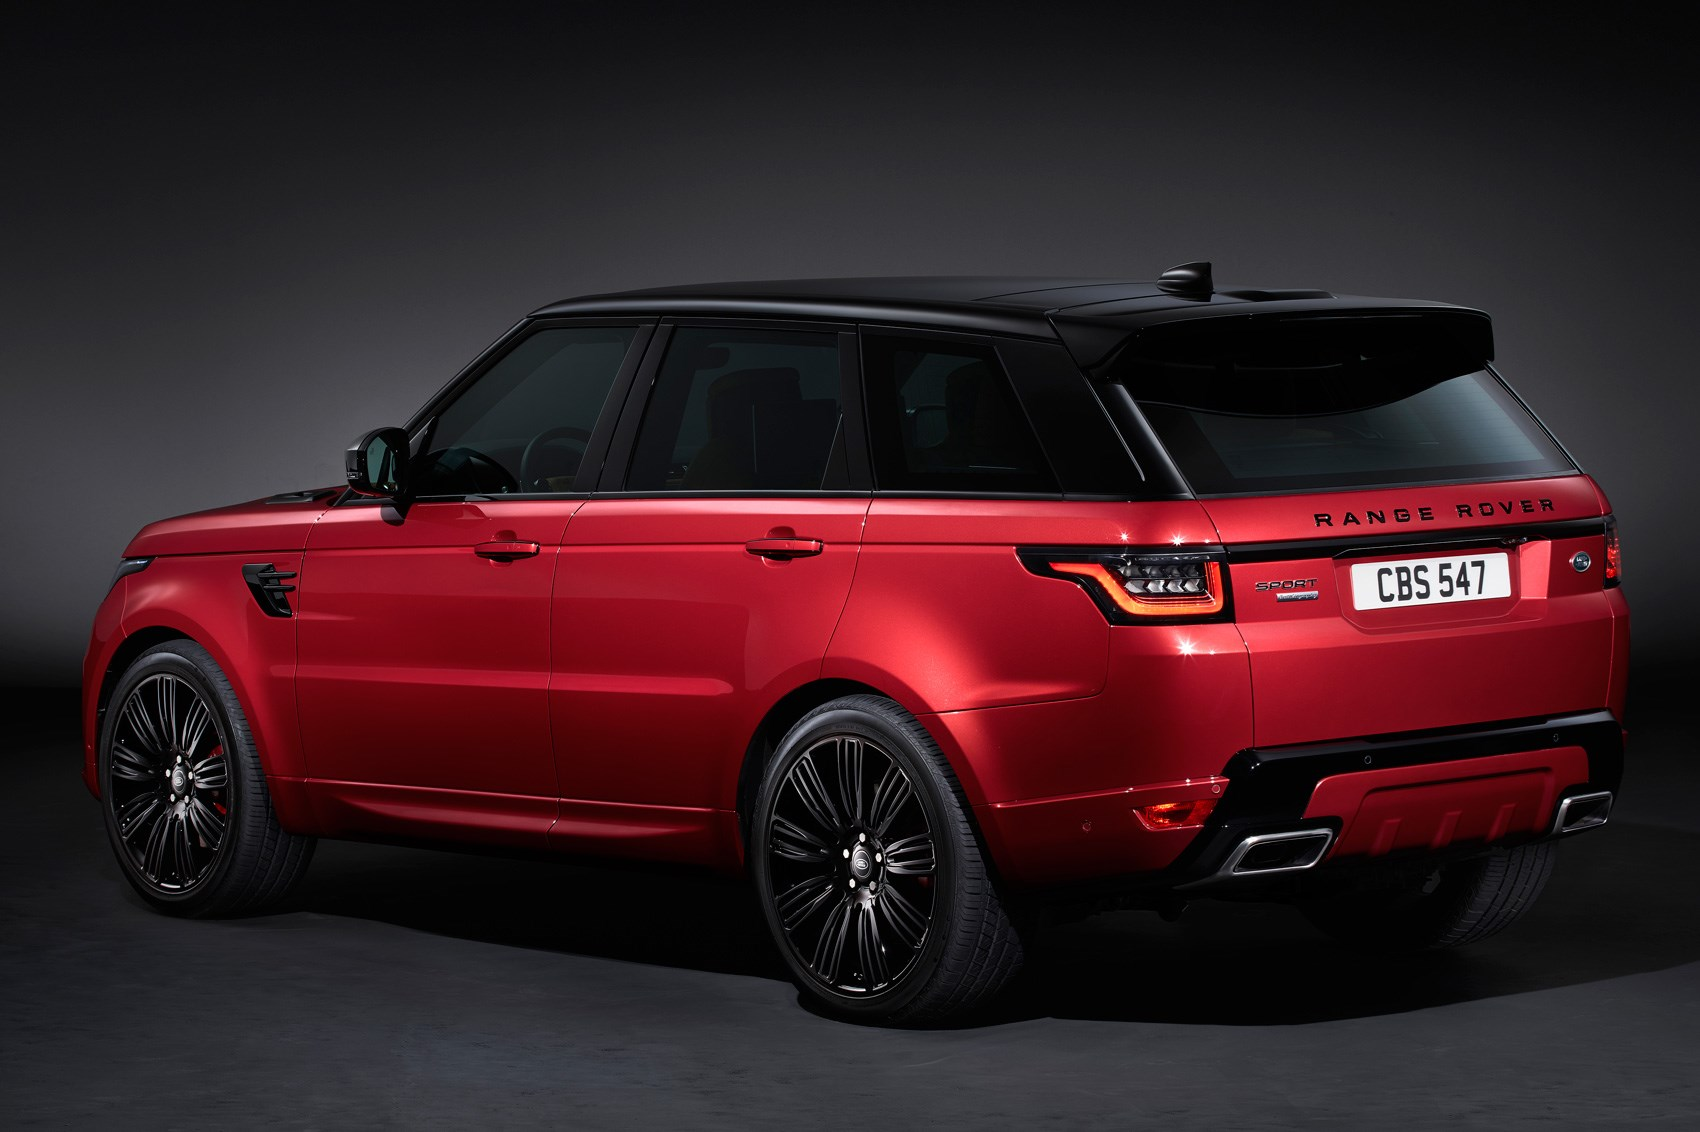 range rover sport 2018 my and p400e phev by car magazine. Black Bedroom Furniture Sets. Home Design Ideas